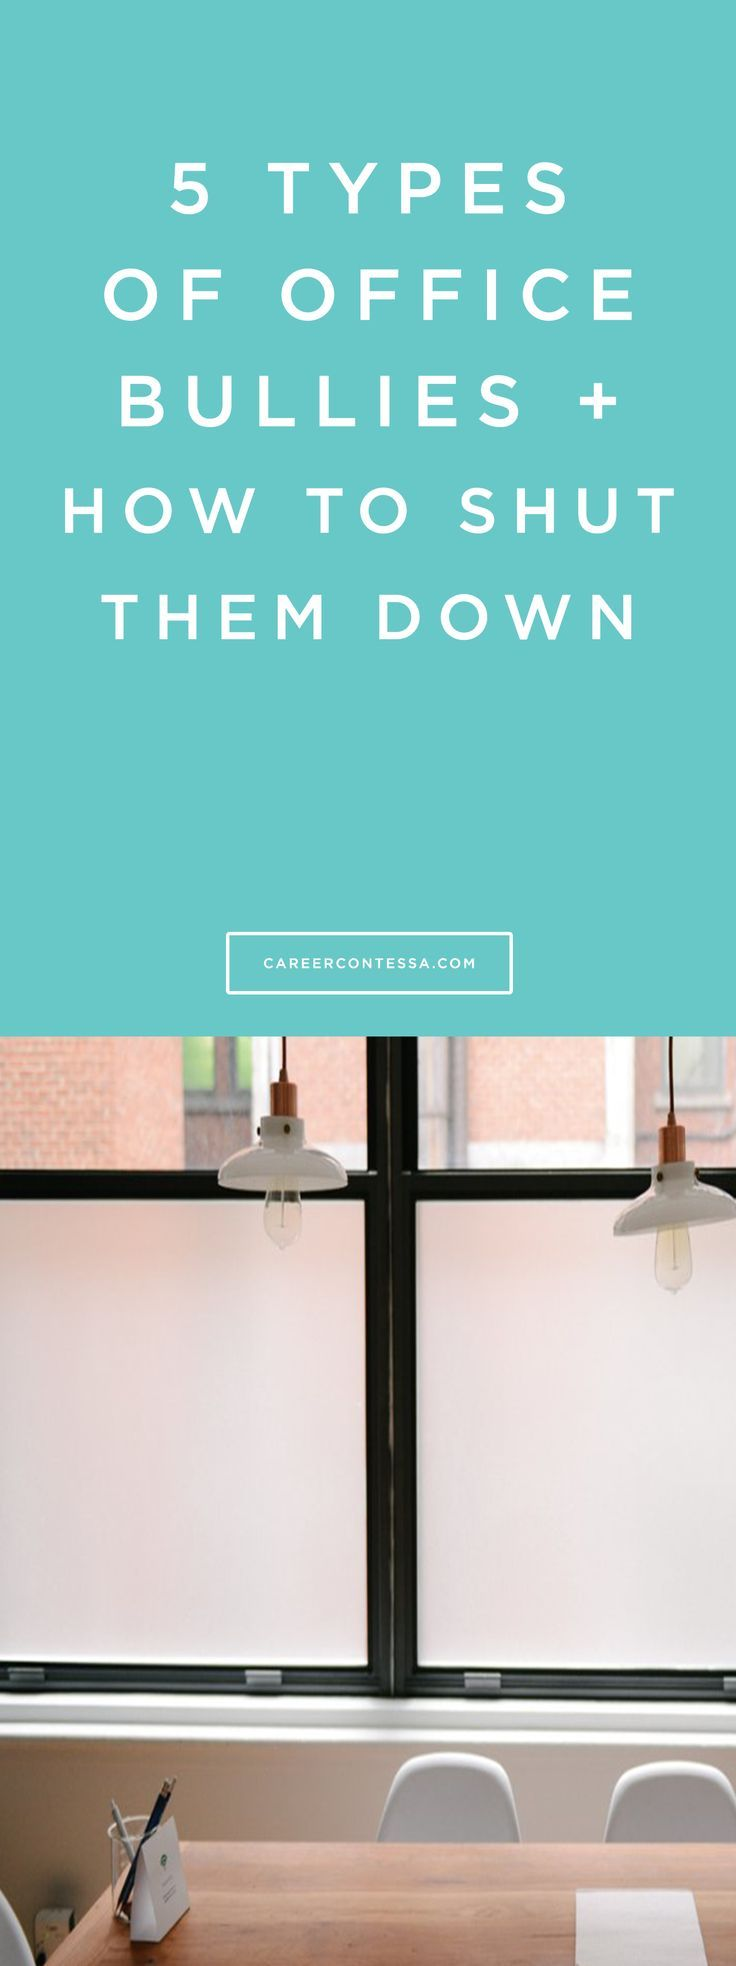 best ideas about workplace safety topics 5 unavoidable office bullies and how to shut them down